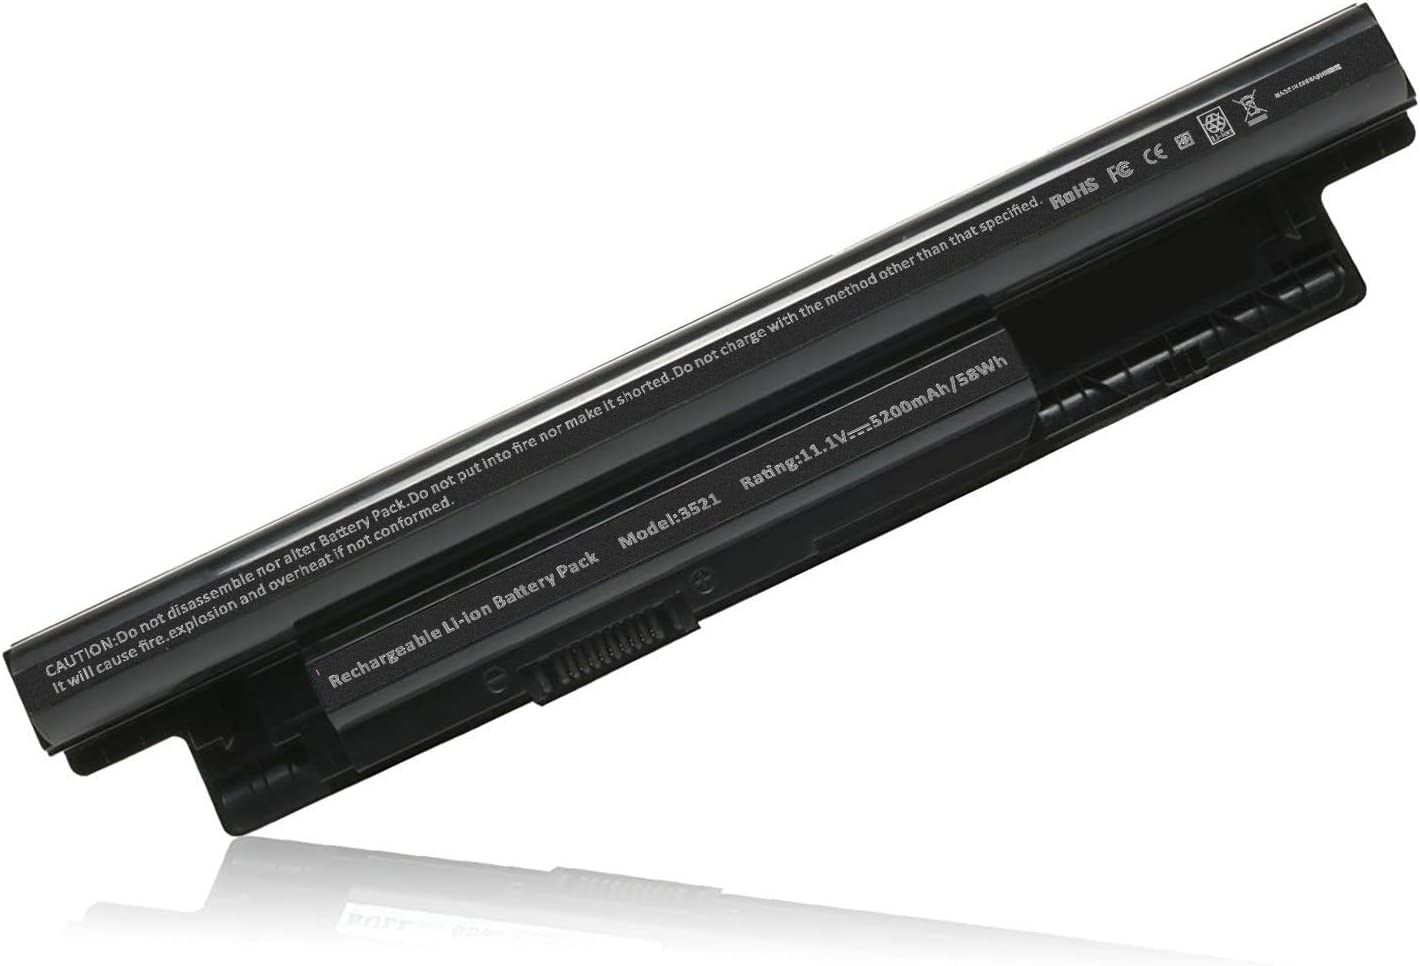 ARyee Laptop Battery for Dell Inspiron 14 3421 14r 5421 14r-3437/5437/ N3421/N5421 15 3521 15r-3537/5537/N3521/N5521/N5537 17 3721 17r-5737/N3721/N3737/N5721/N5737 17r 5721 15r 5521 Model:3521